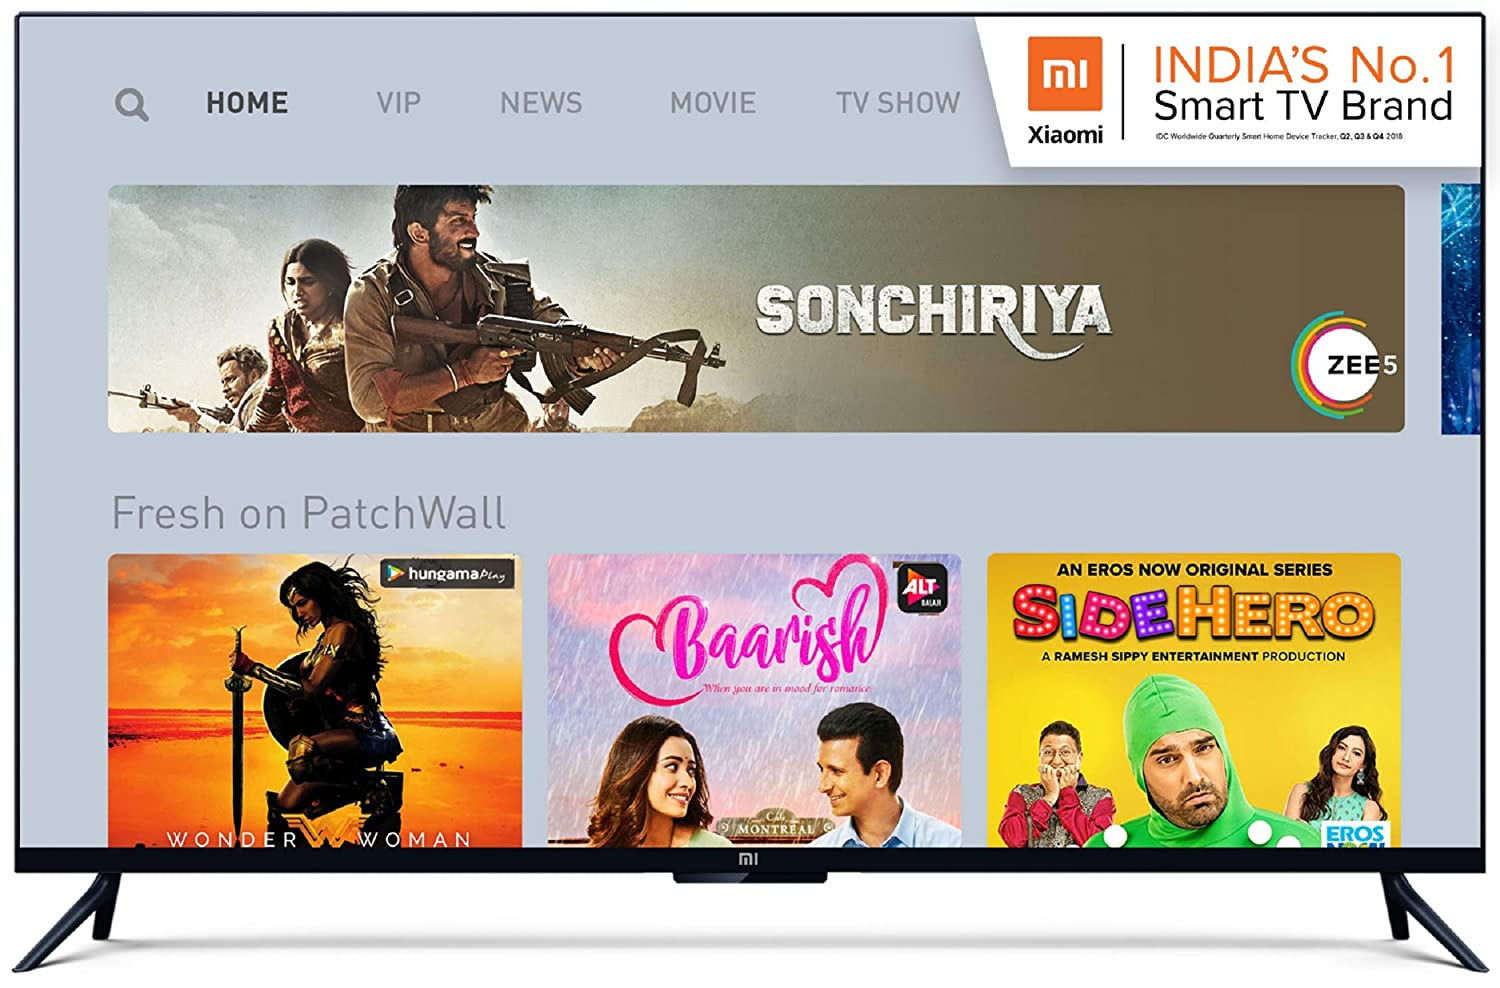 Mi TVs India - Mi LED TV 4 PRO (55)